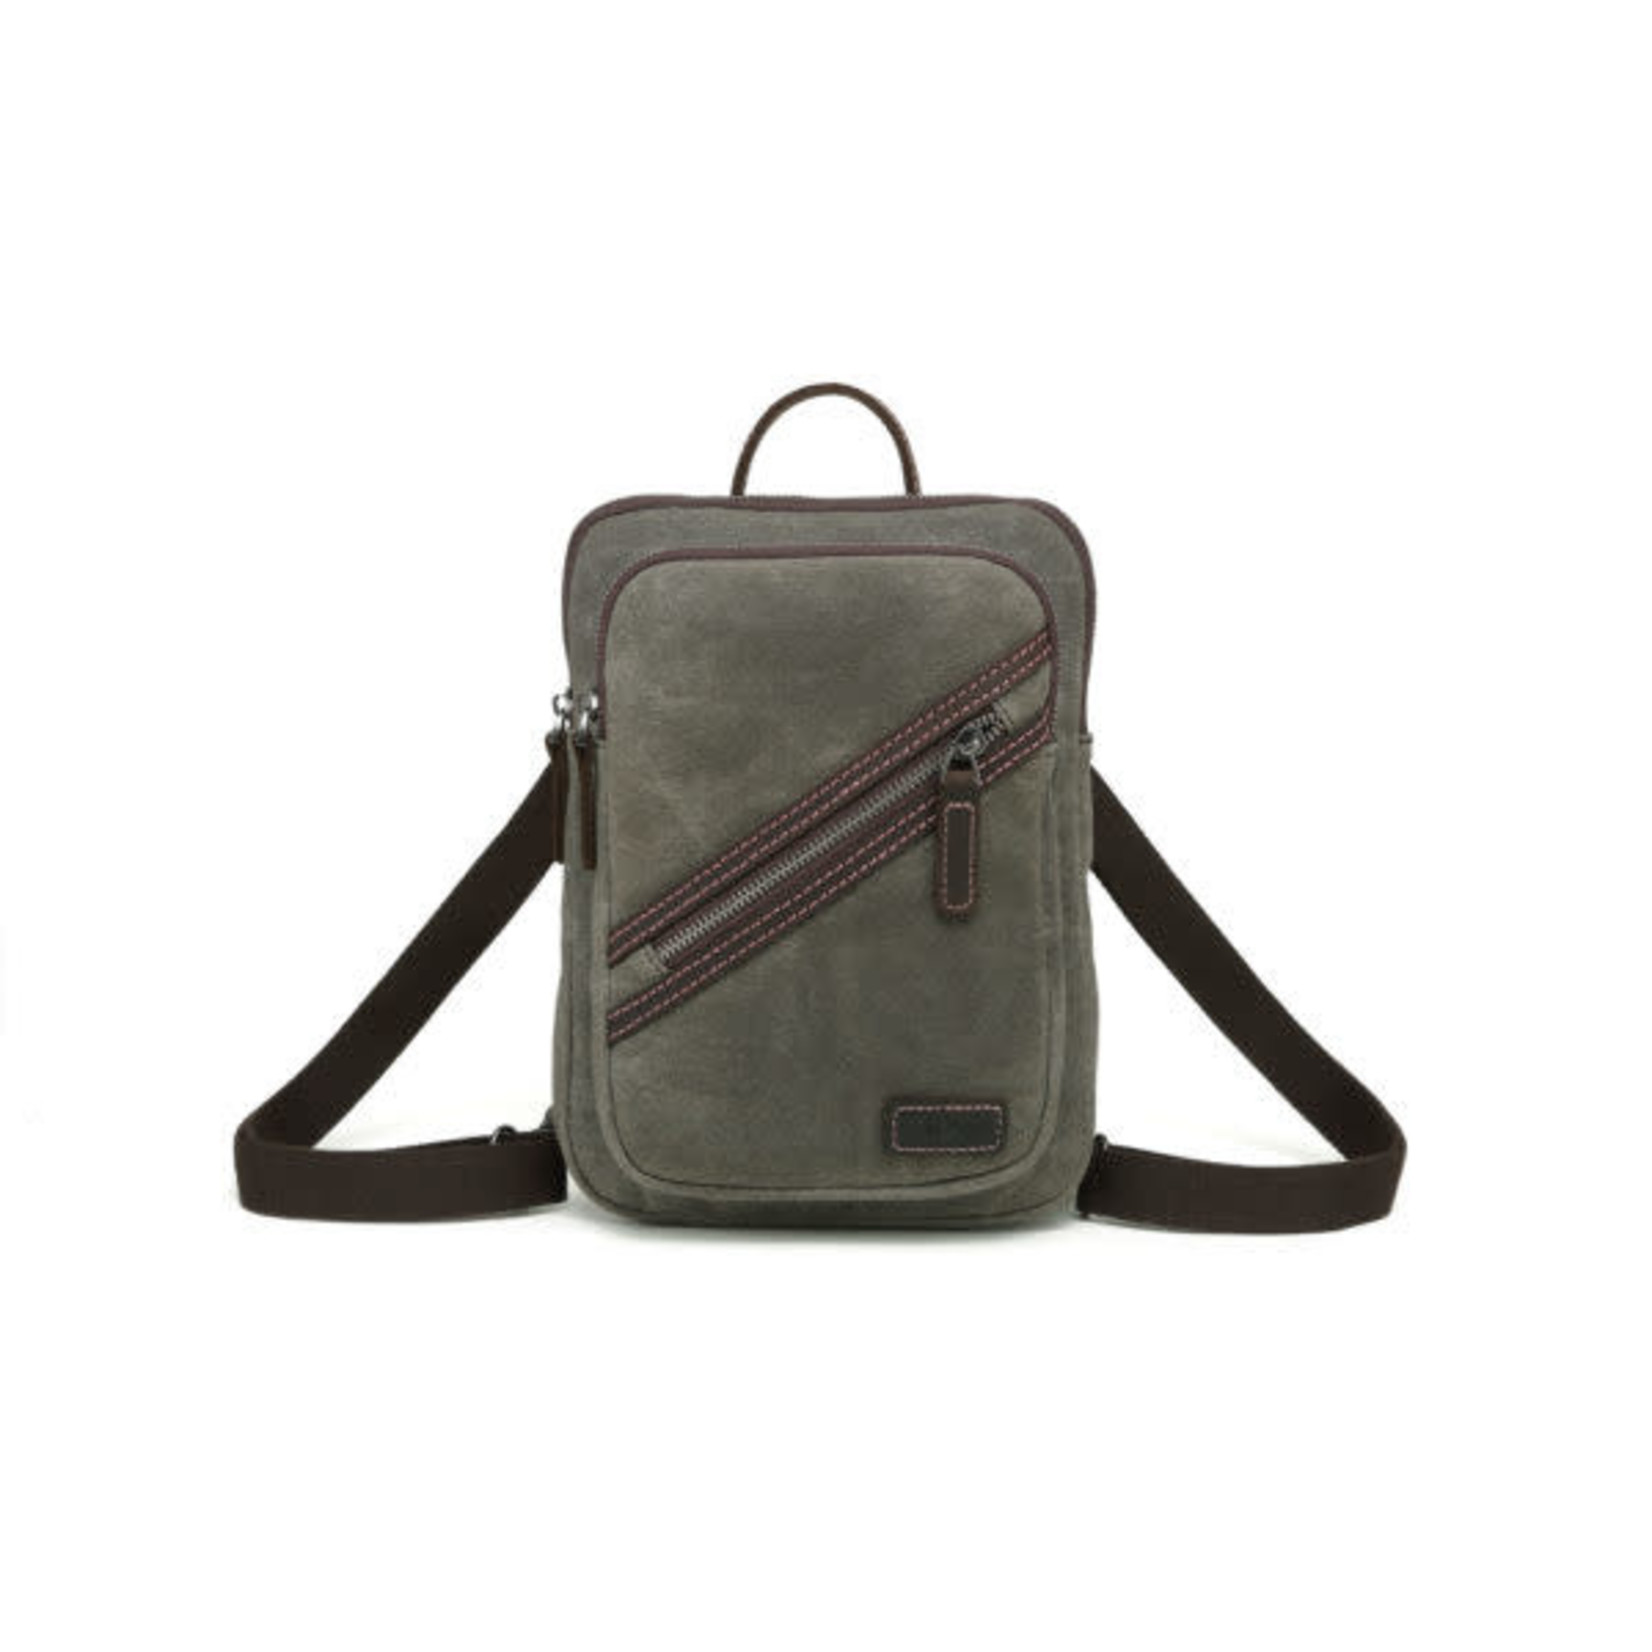 DAVAN DAVAN MULTI-FUNCTIONAL BACKPACK/SHOULDER